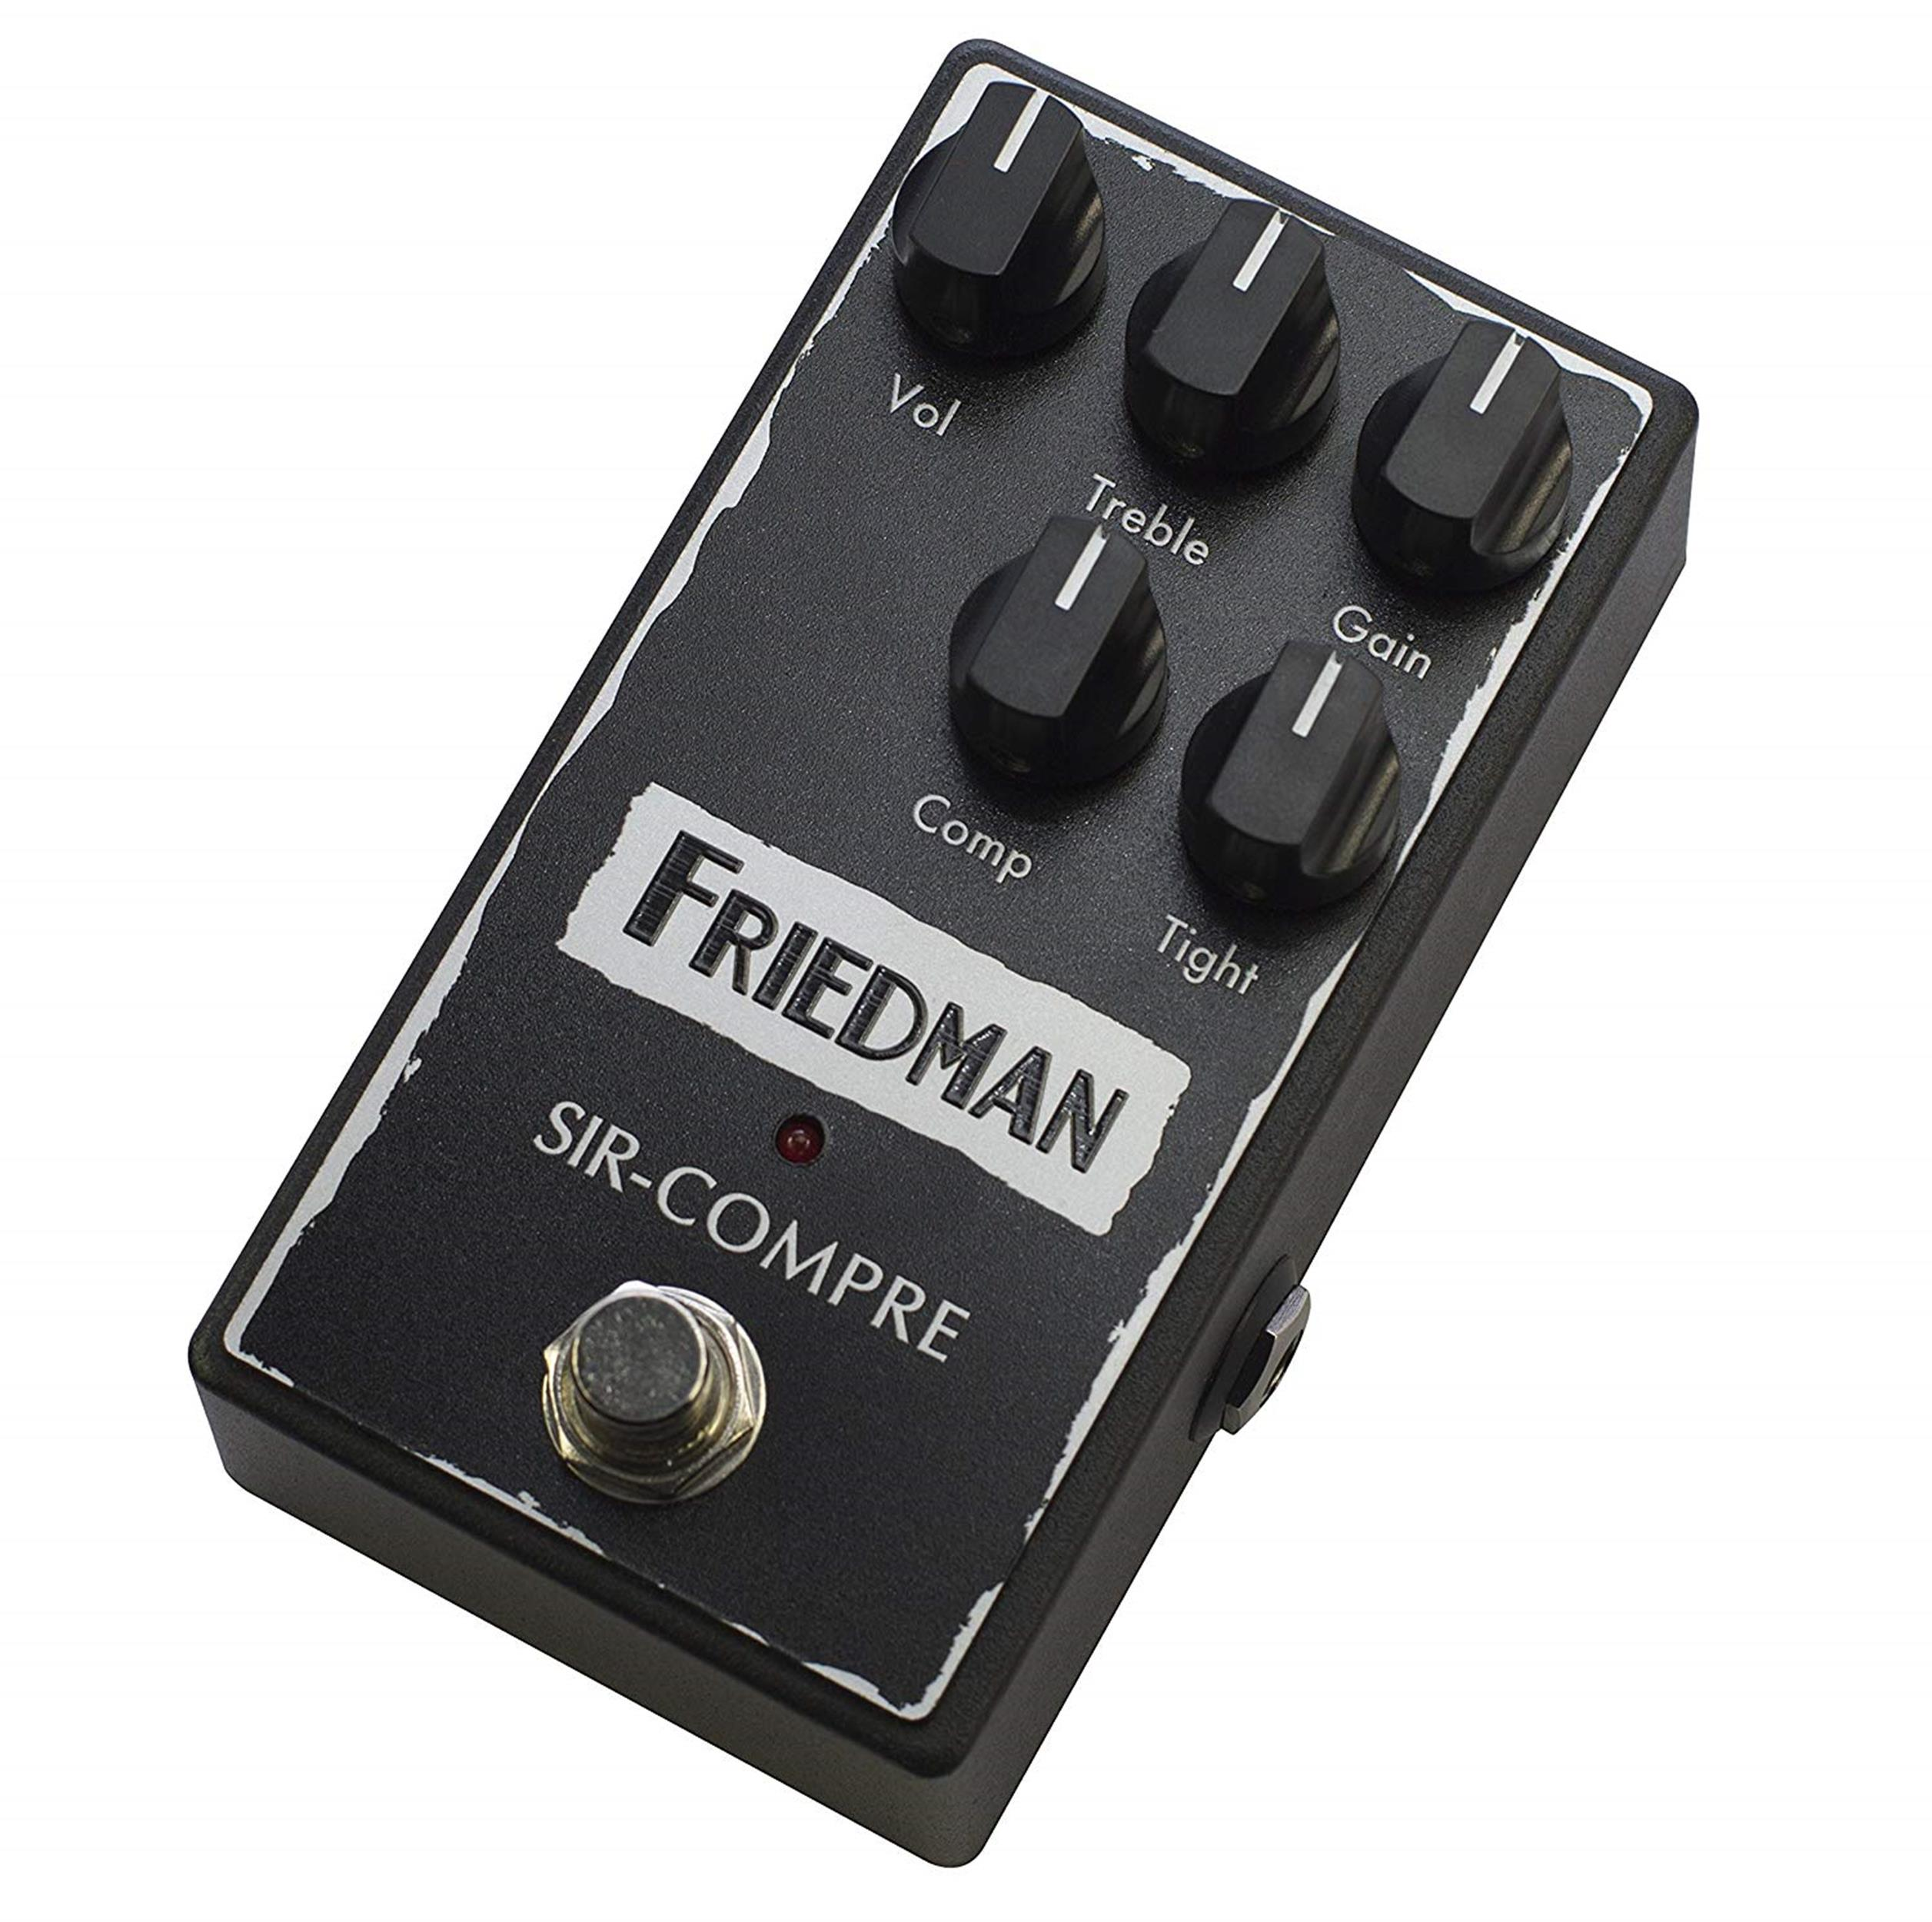 FRIEDMAN SIR COMPRE COMPRESSOR